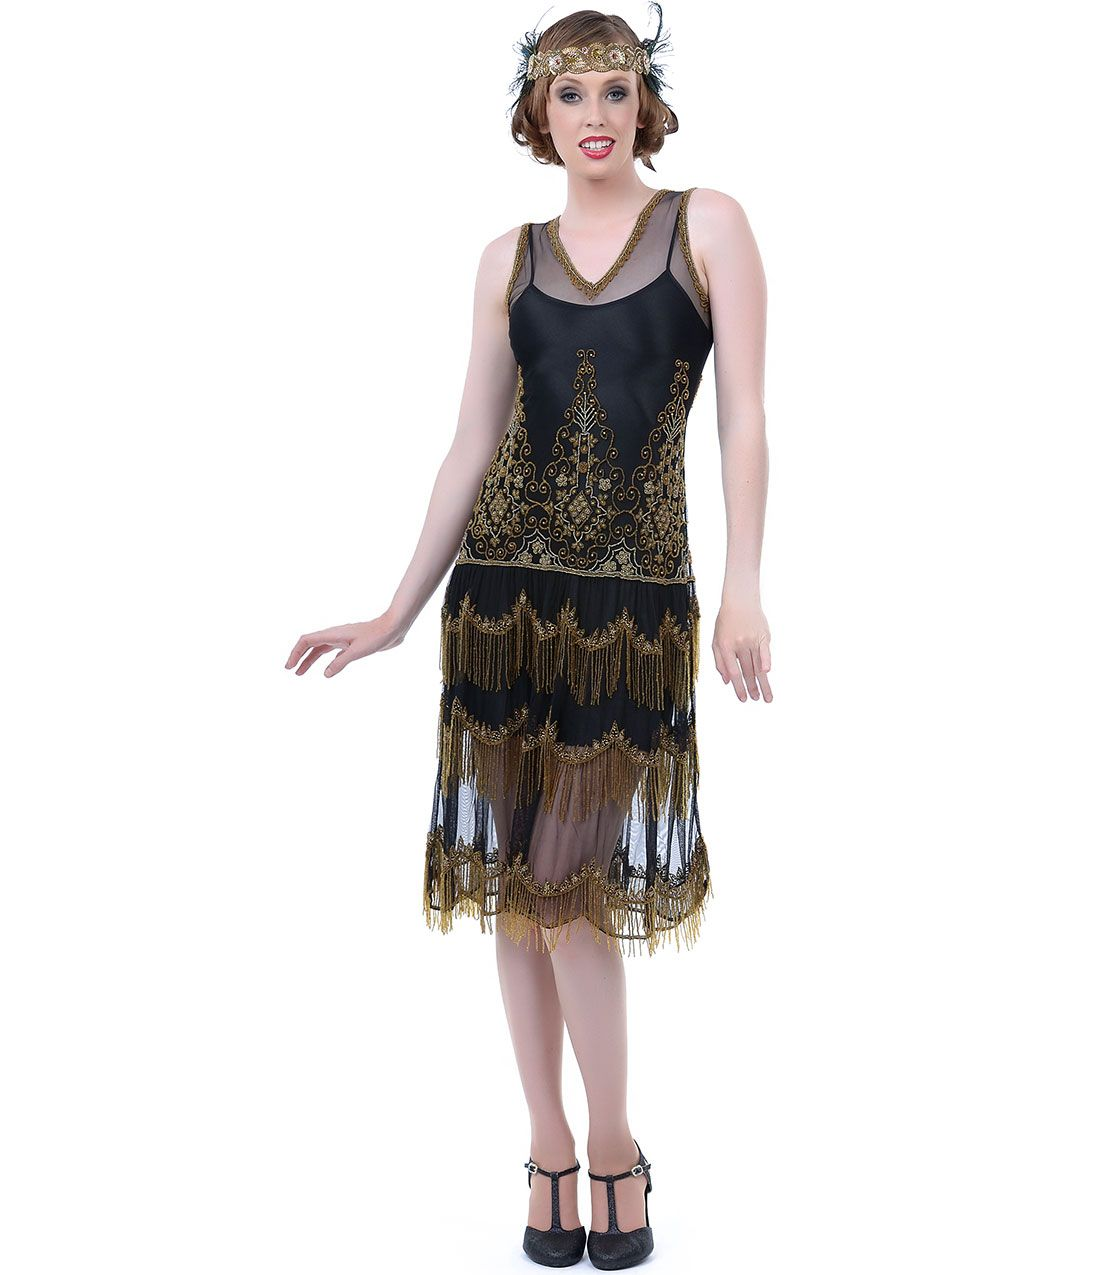 Black and Gold Dress for Sale